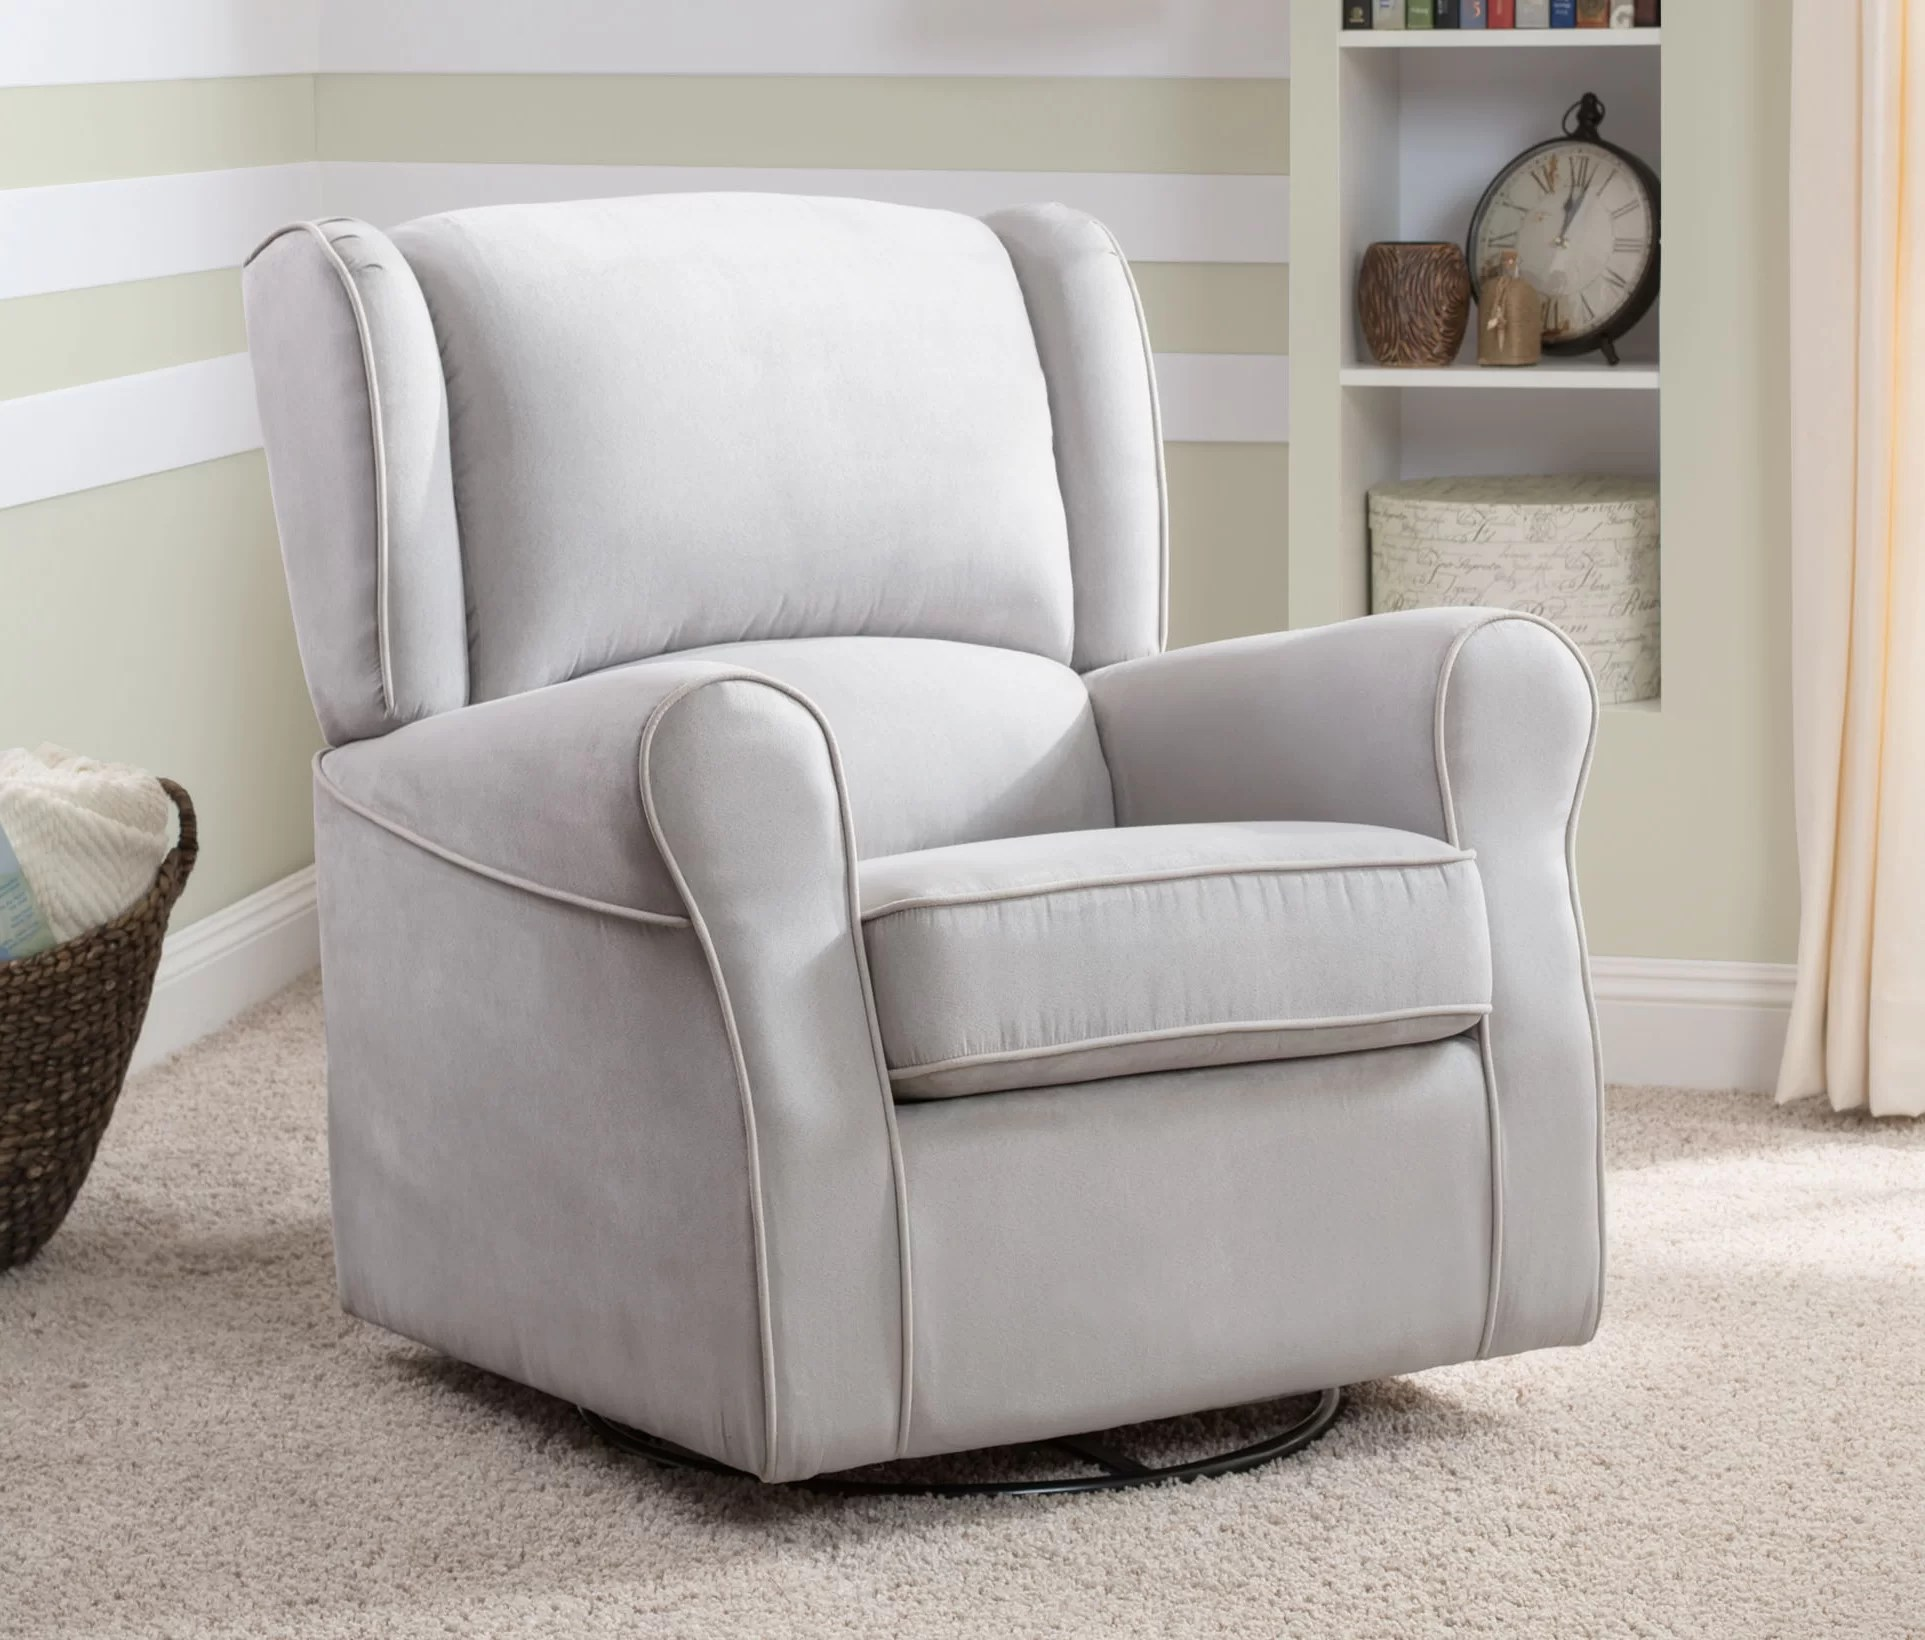 Toddler Upholstered Rocking Chair Morgan Upholstered Glider